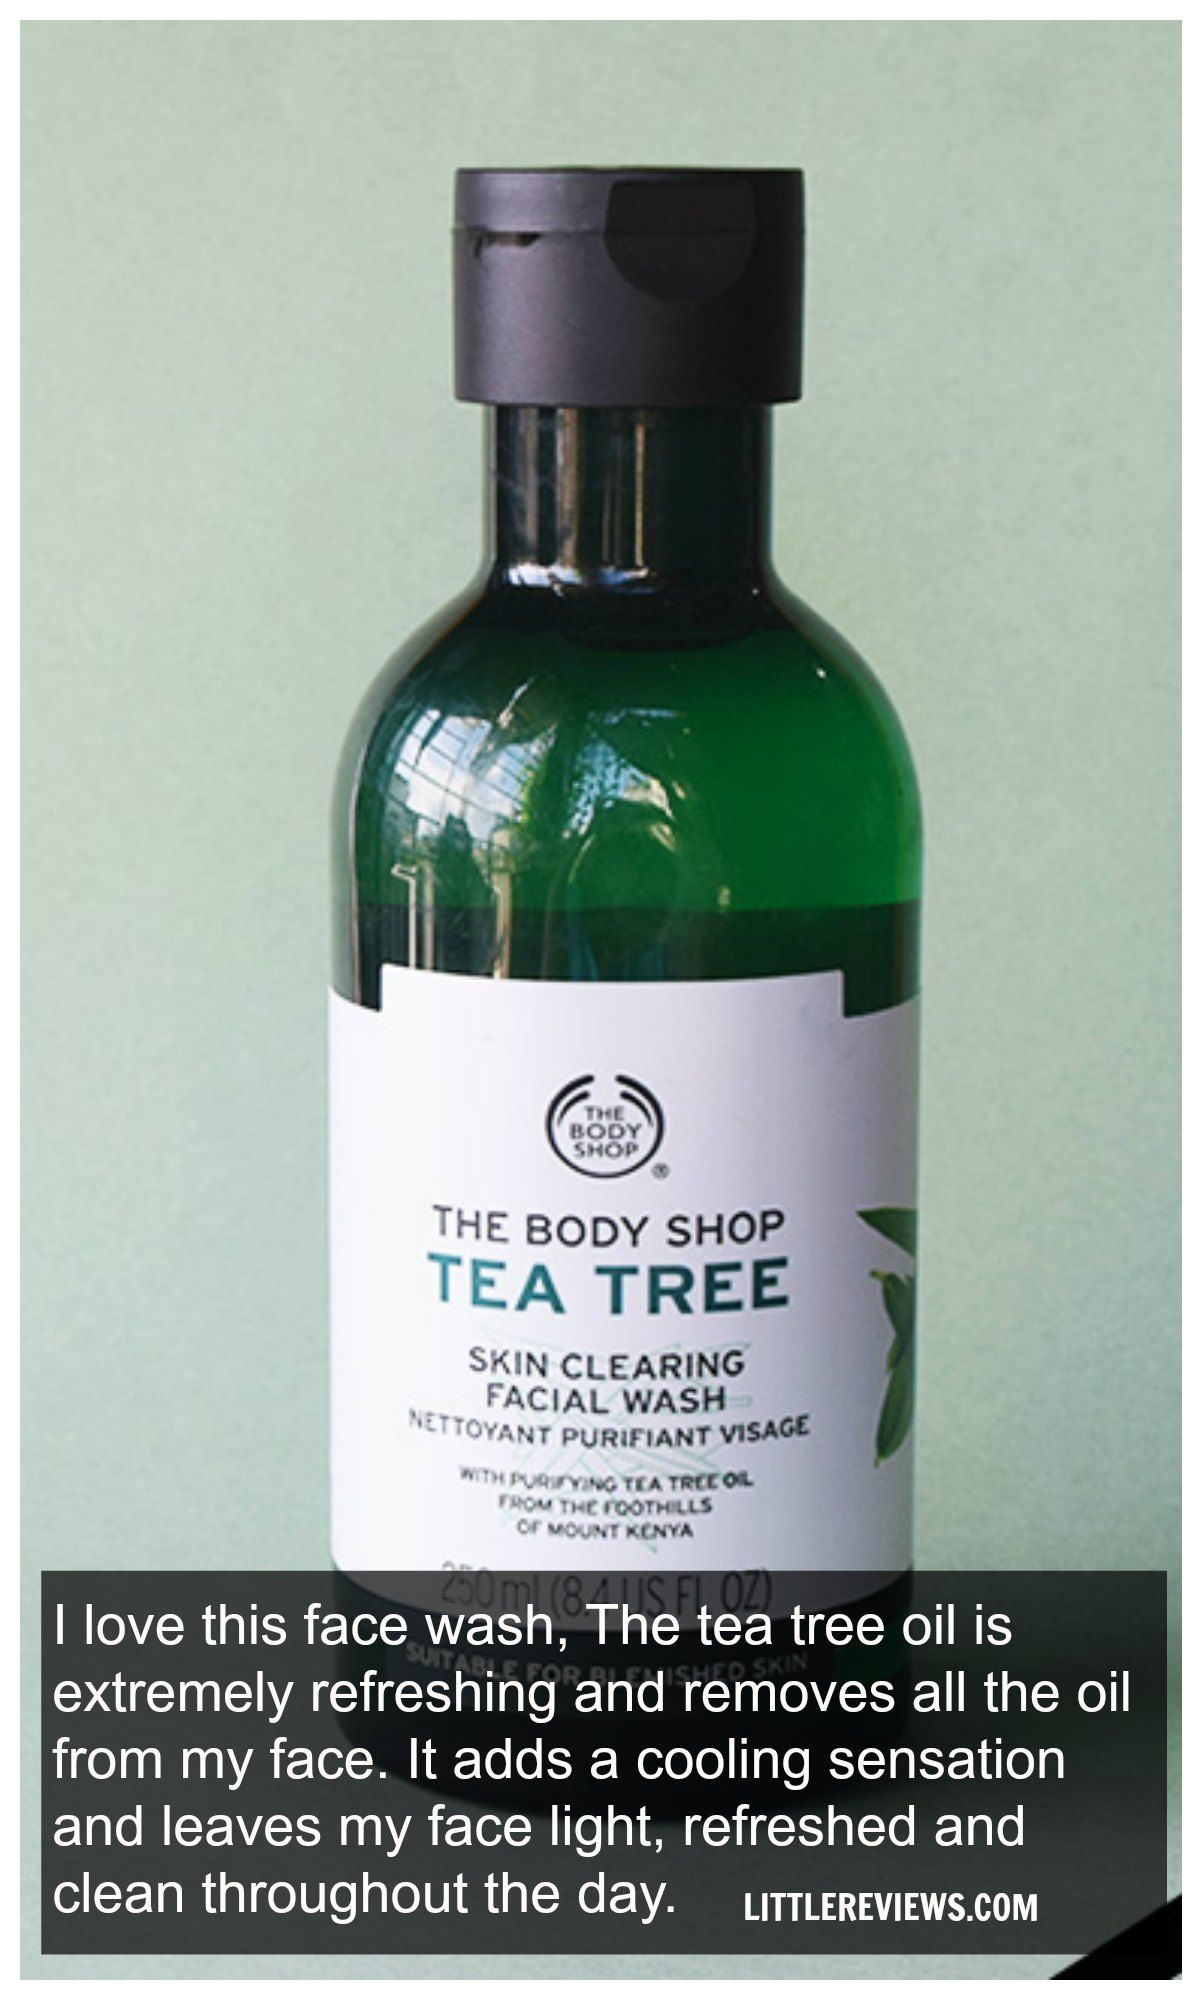 The Body Shop Tea Tree Skin Clearing Facial Wash Review Body Shop Tea Tree The Body Shop Facial Wash